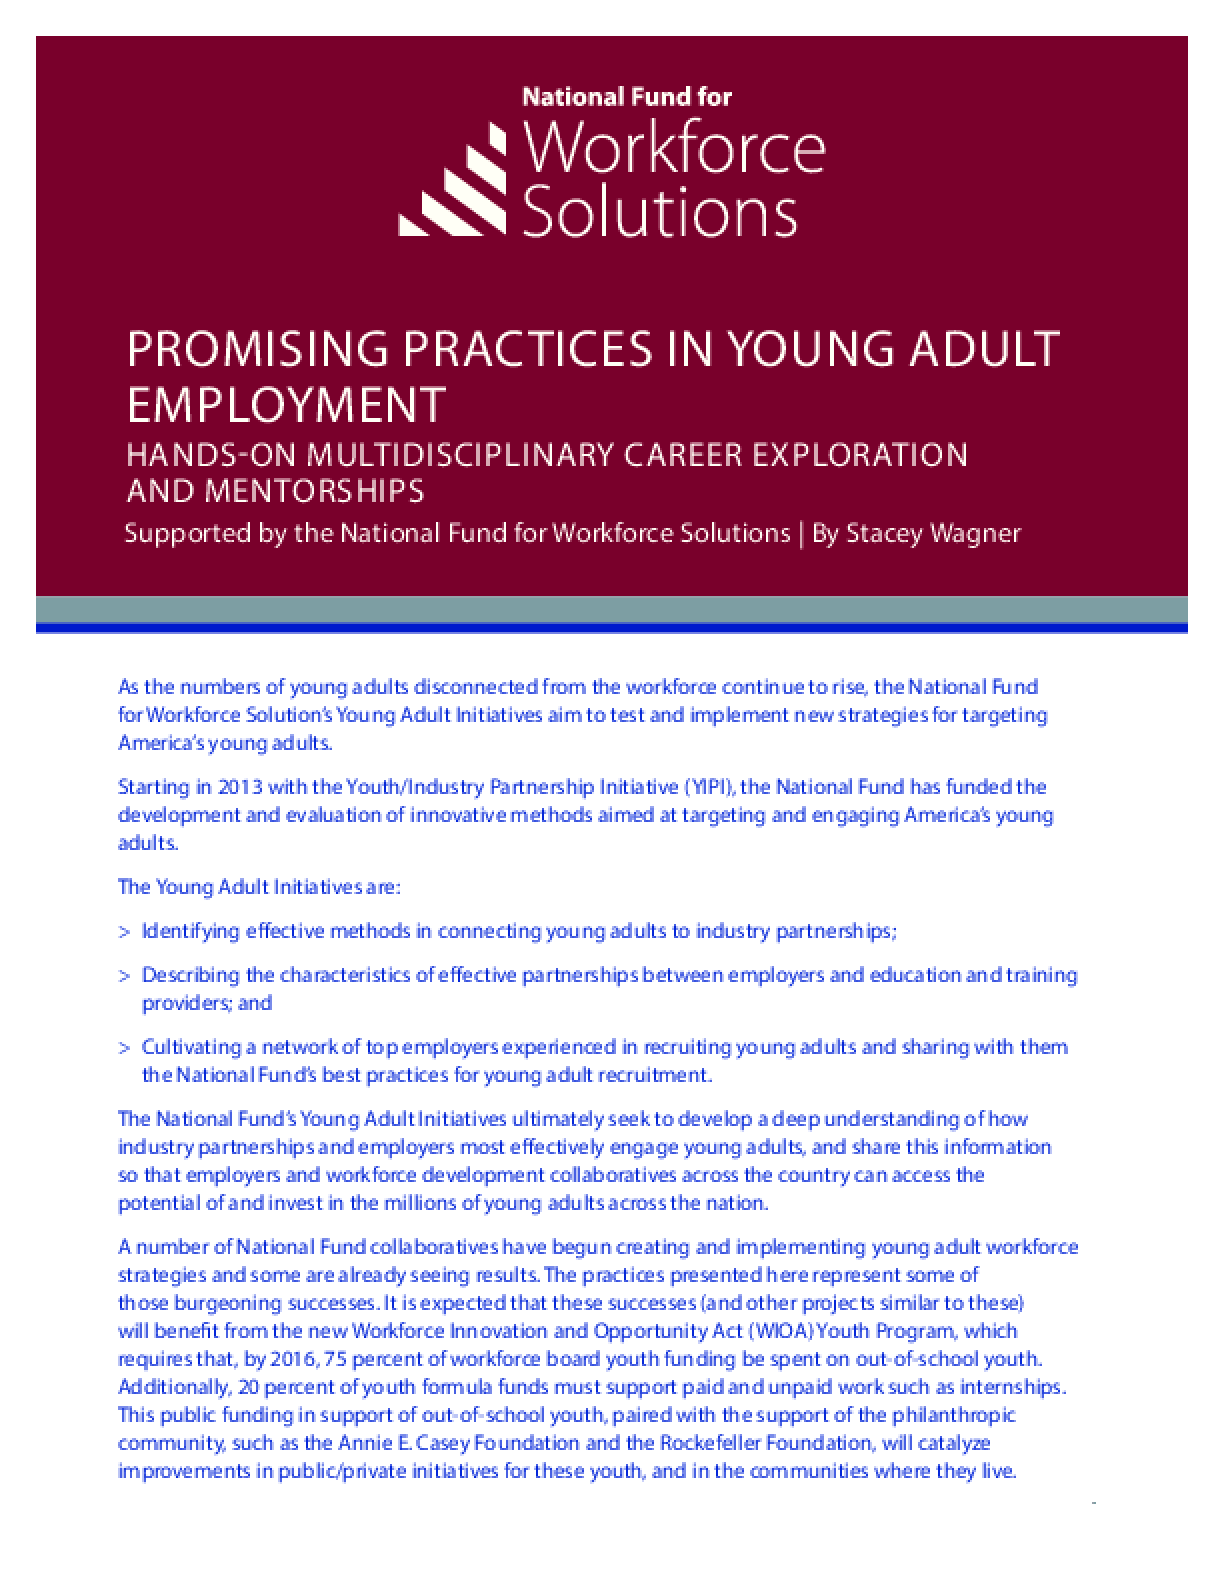 Promising Practices in Young Adult Employment: Hands-On Career Exploration